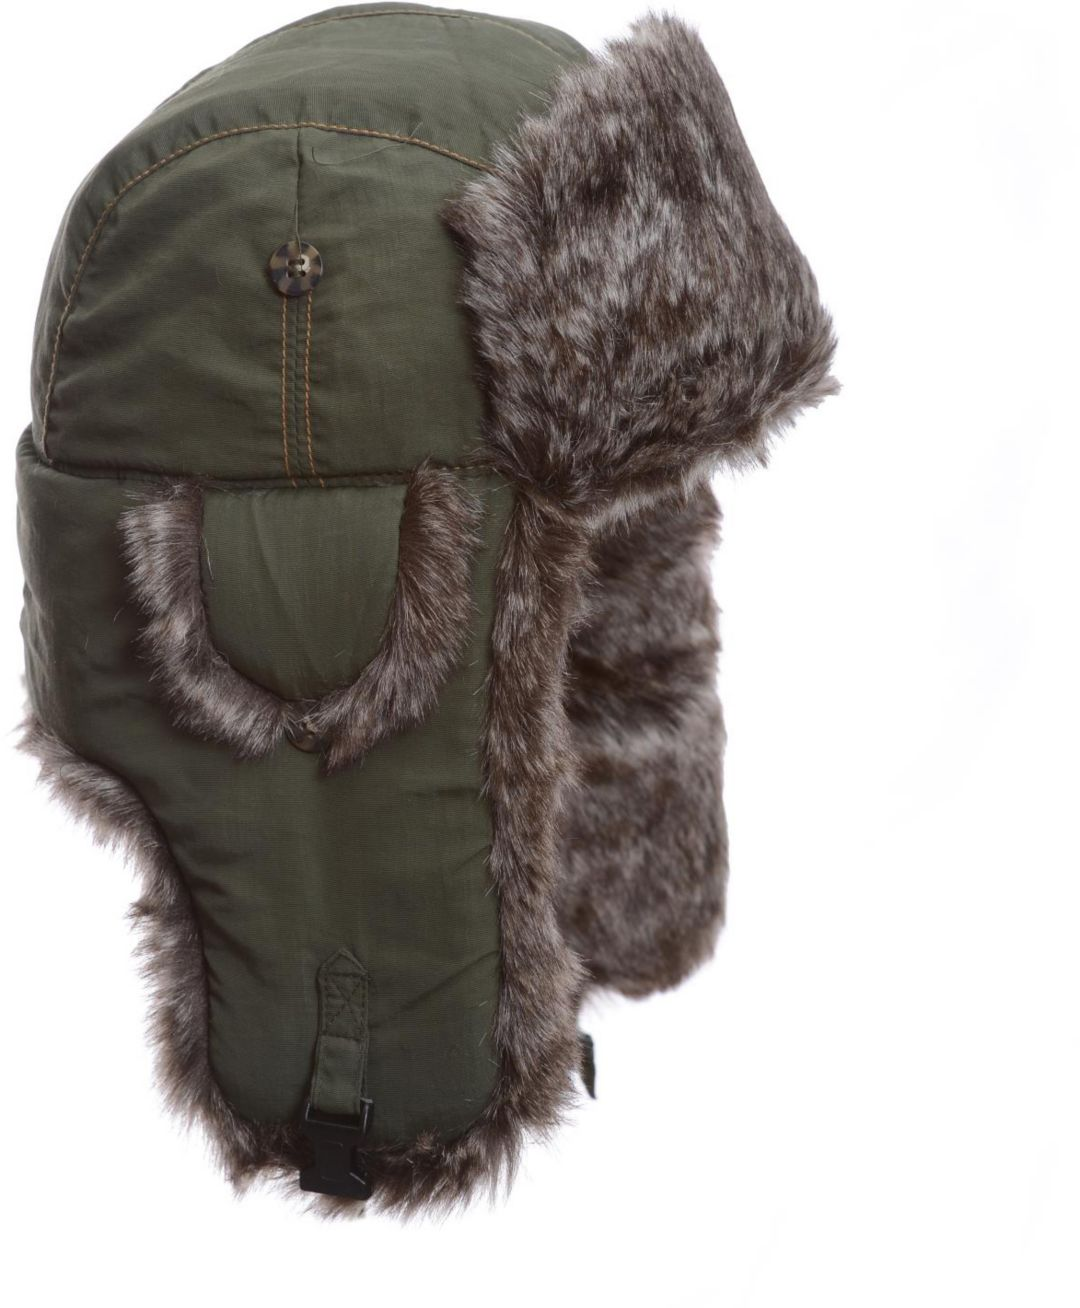 c37594c5 Mad Bomber Men's Olive Supplex Faux Fur Bomber Hat | DICK'S Sporting ...